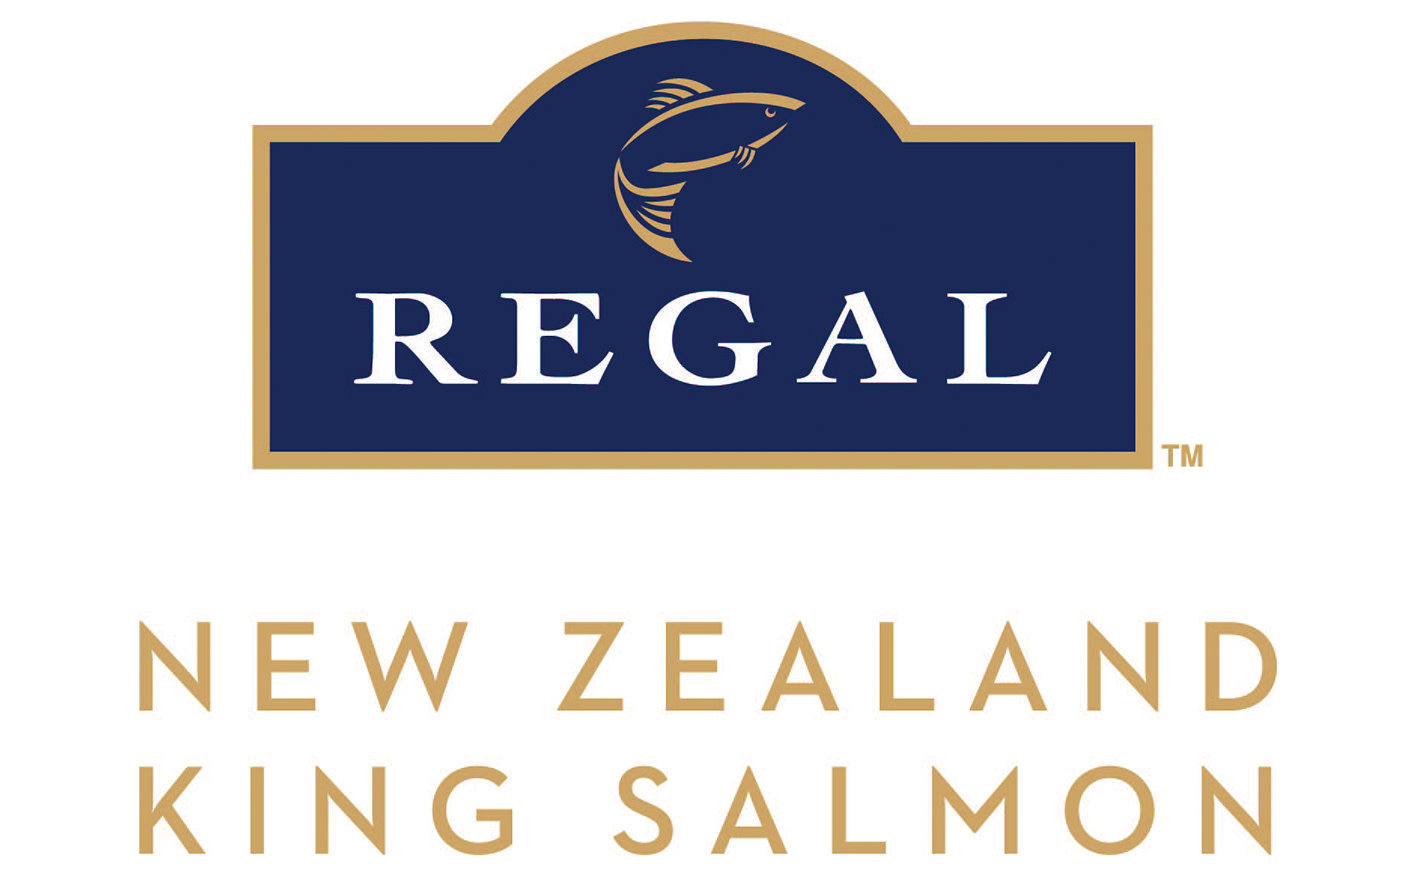 Regal New Zealand King Salmon